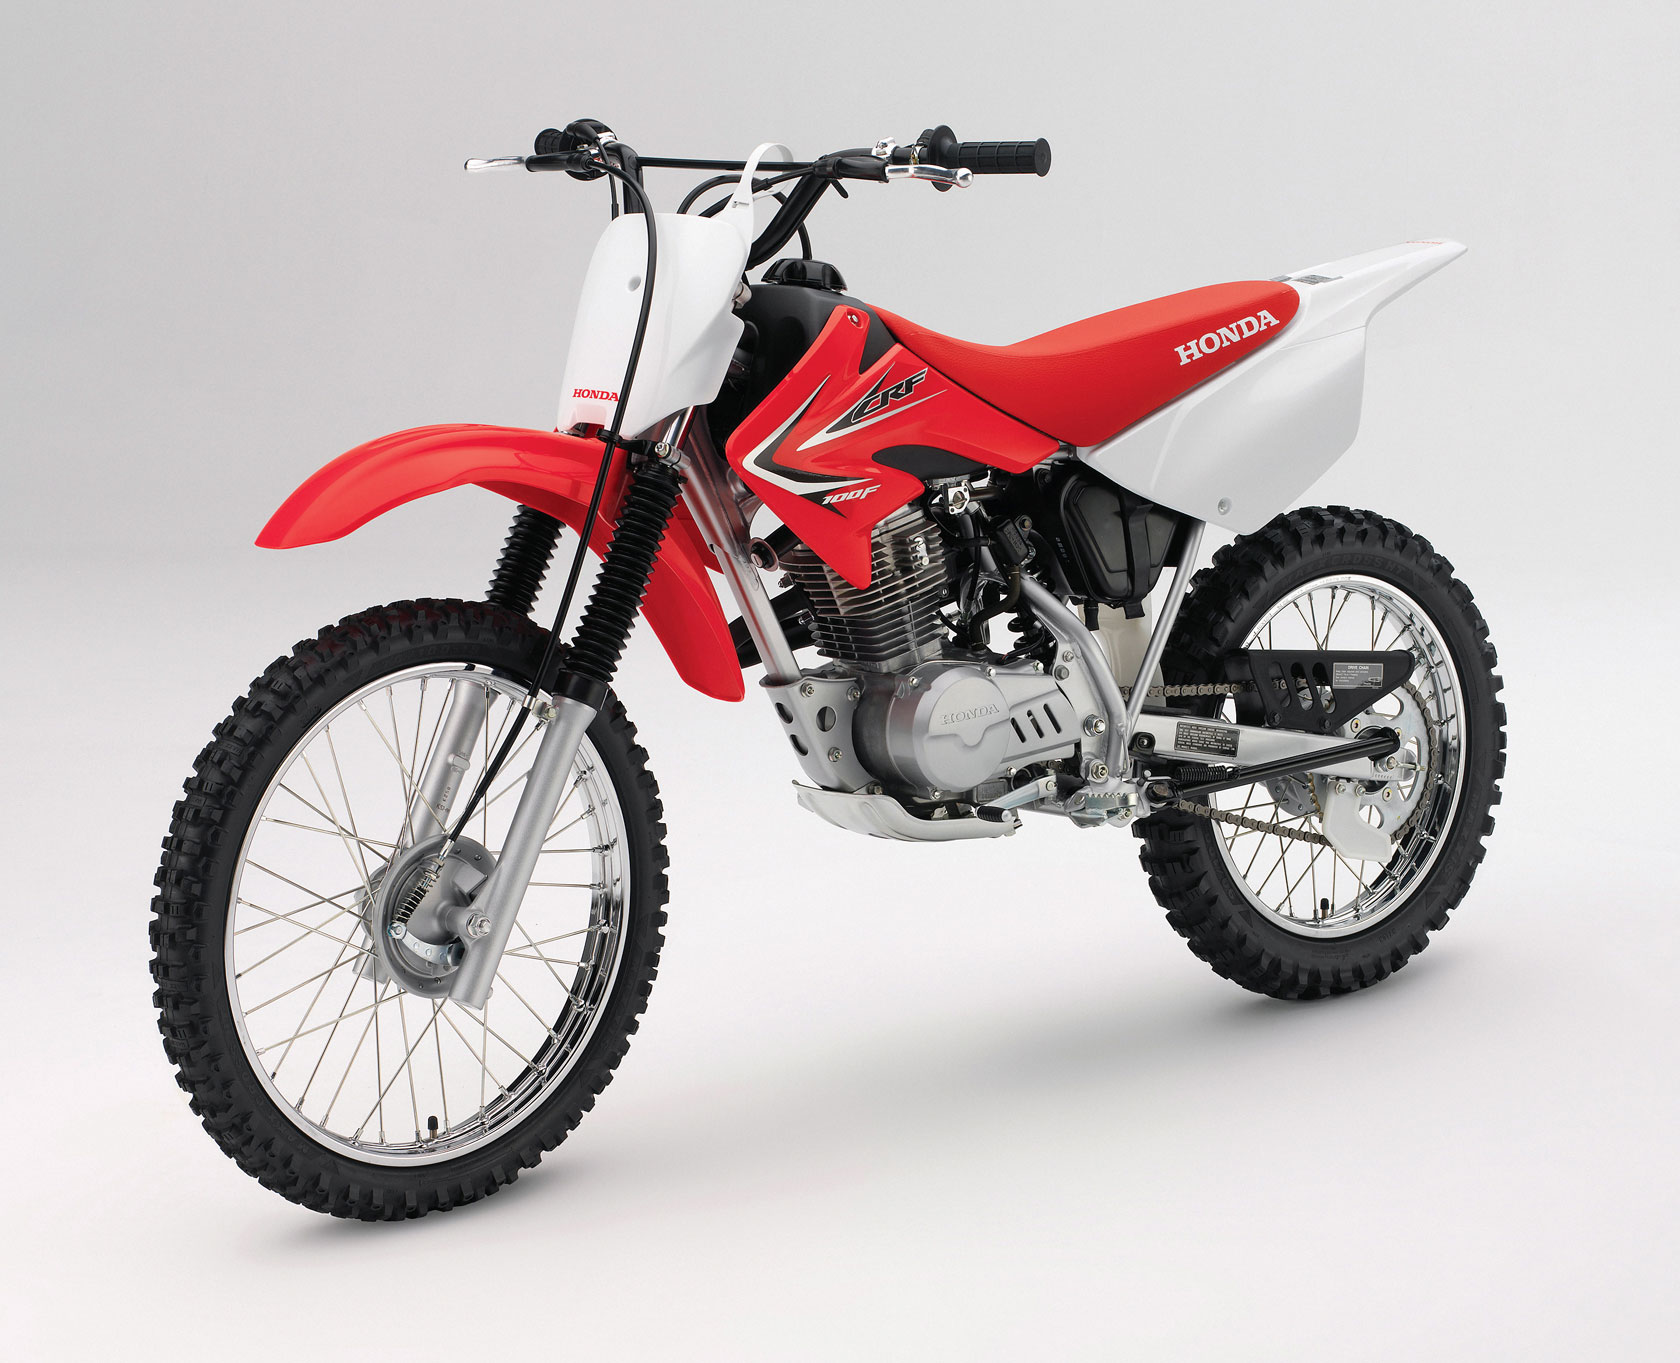 honda crf100f specs 2010 2011 autoevolution. Black Bedroom Furniture Sets. Home Design Ideas